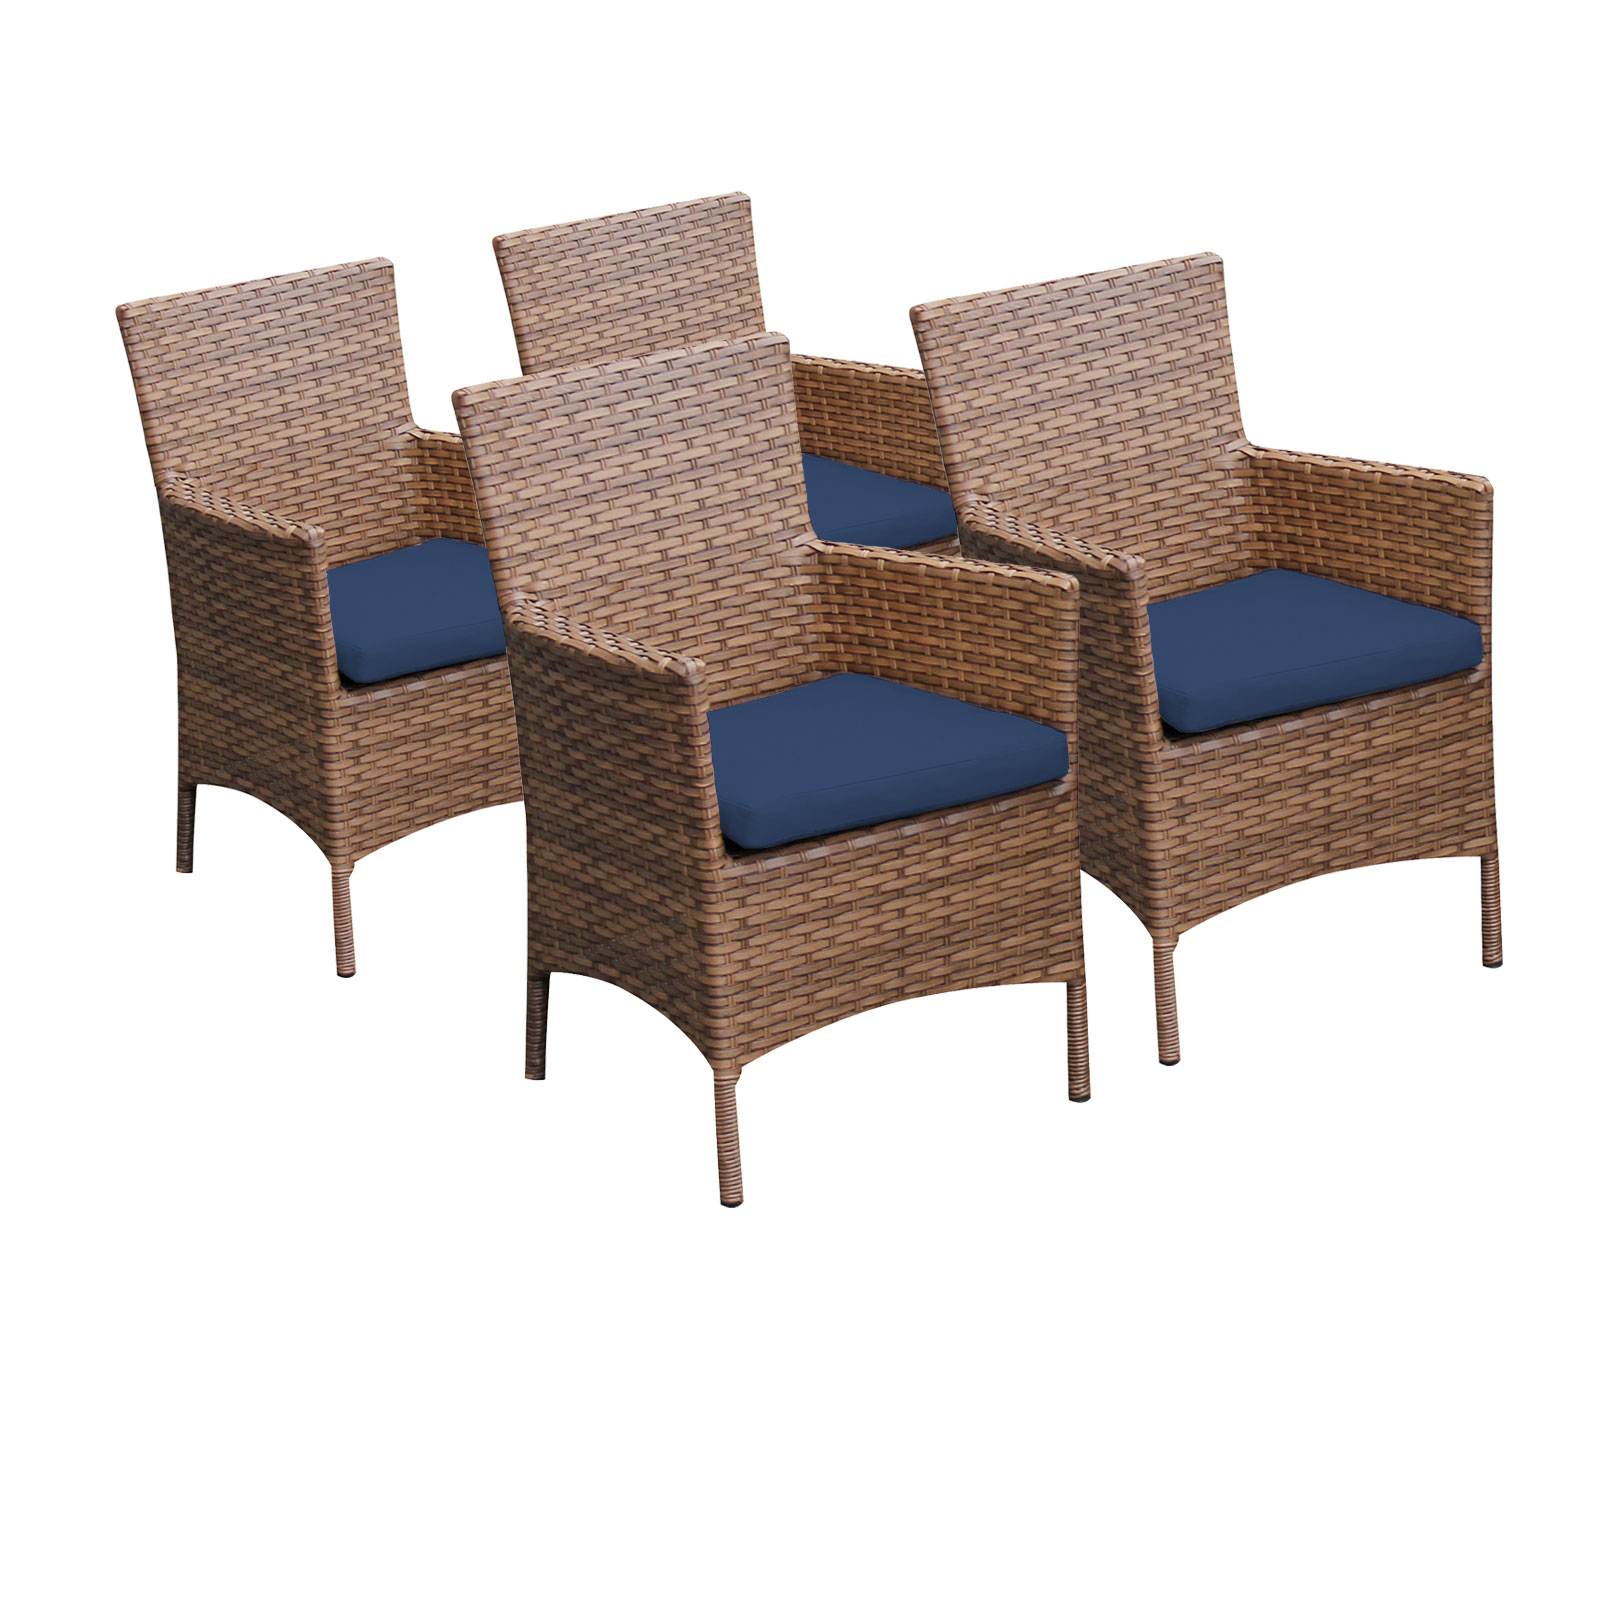 4 Tuscan Dining Chairs With Arms